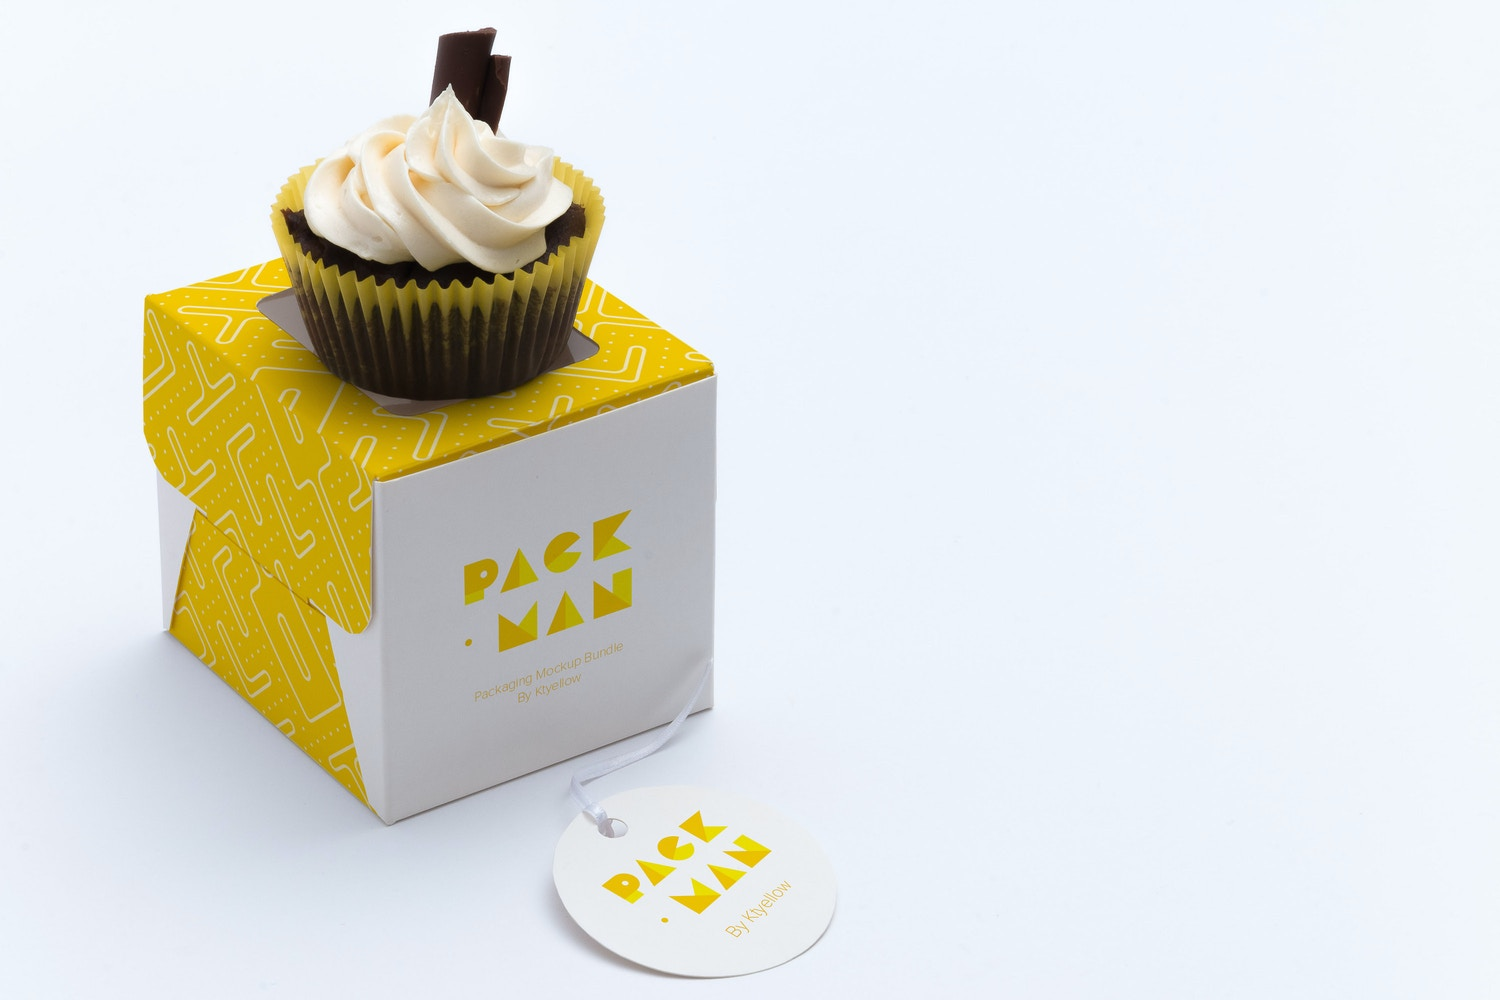 One Cupcake Box Mockup 03 by Ktyellow  on Original Mockups